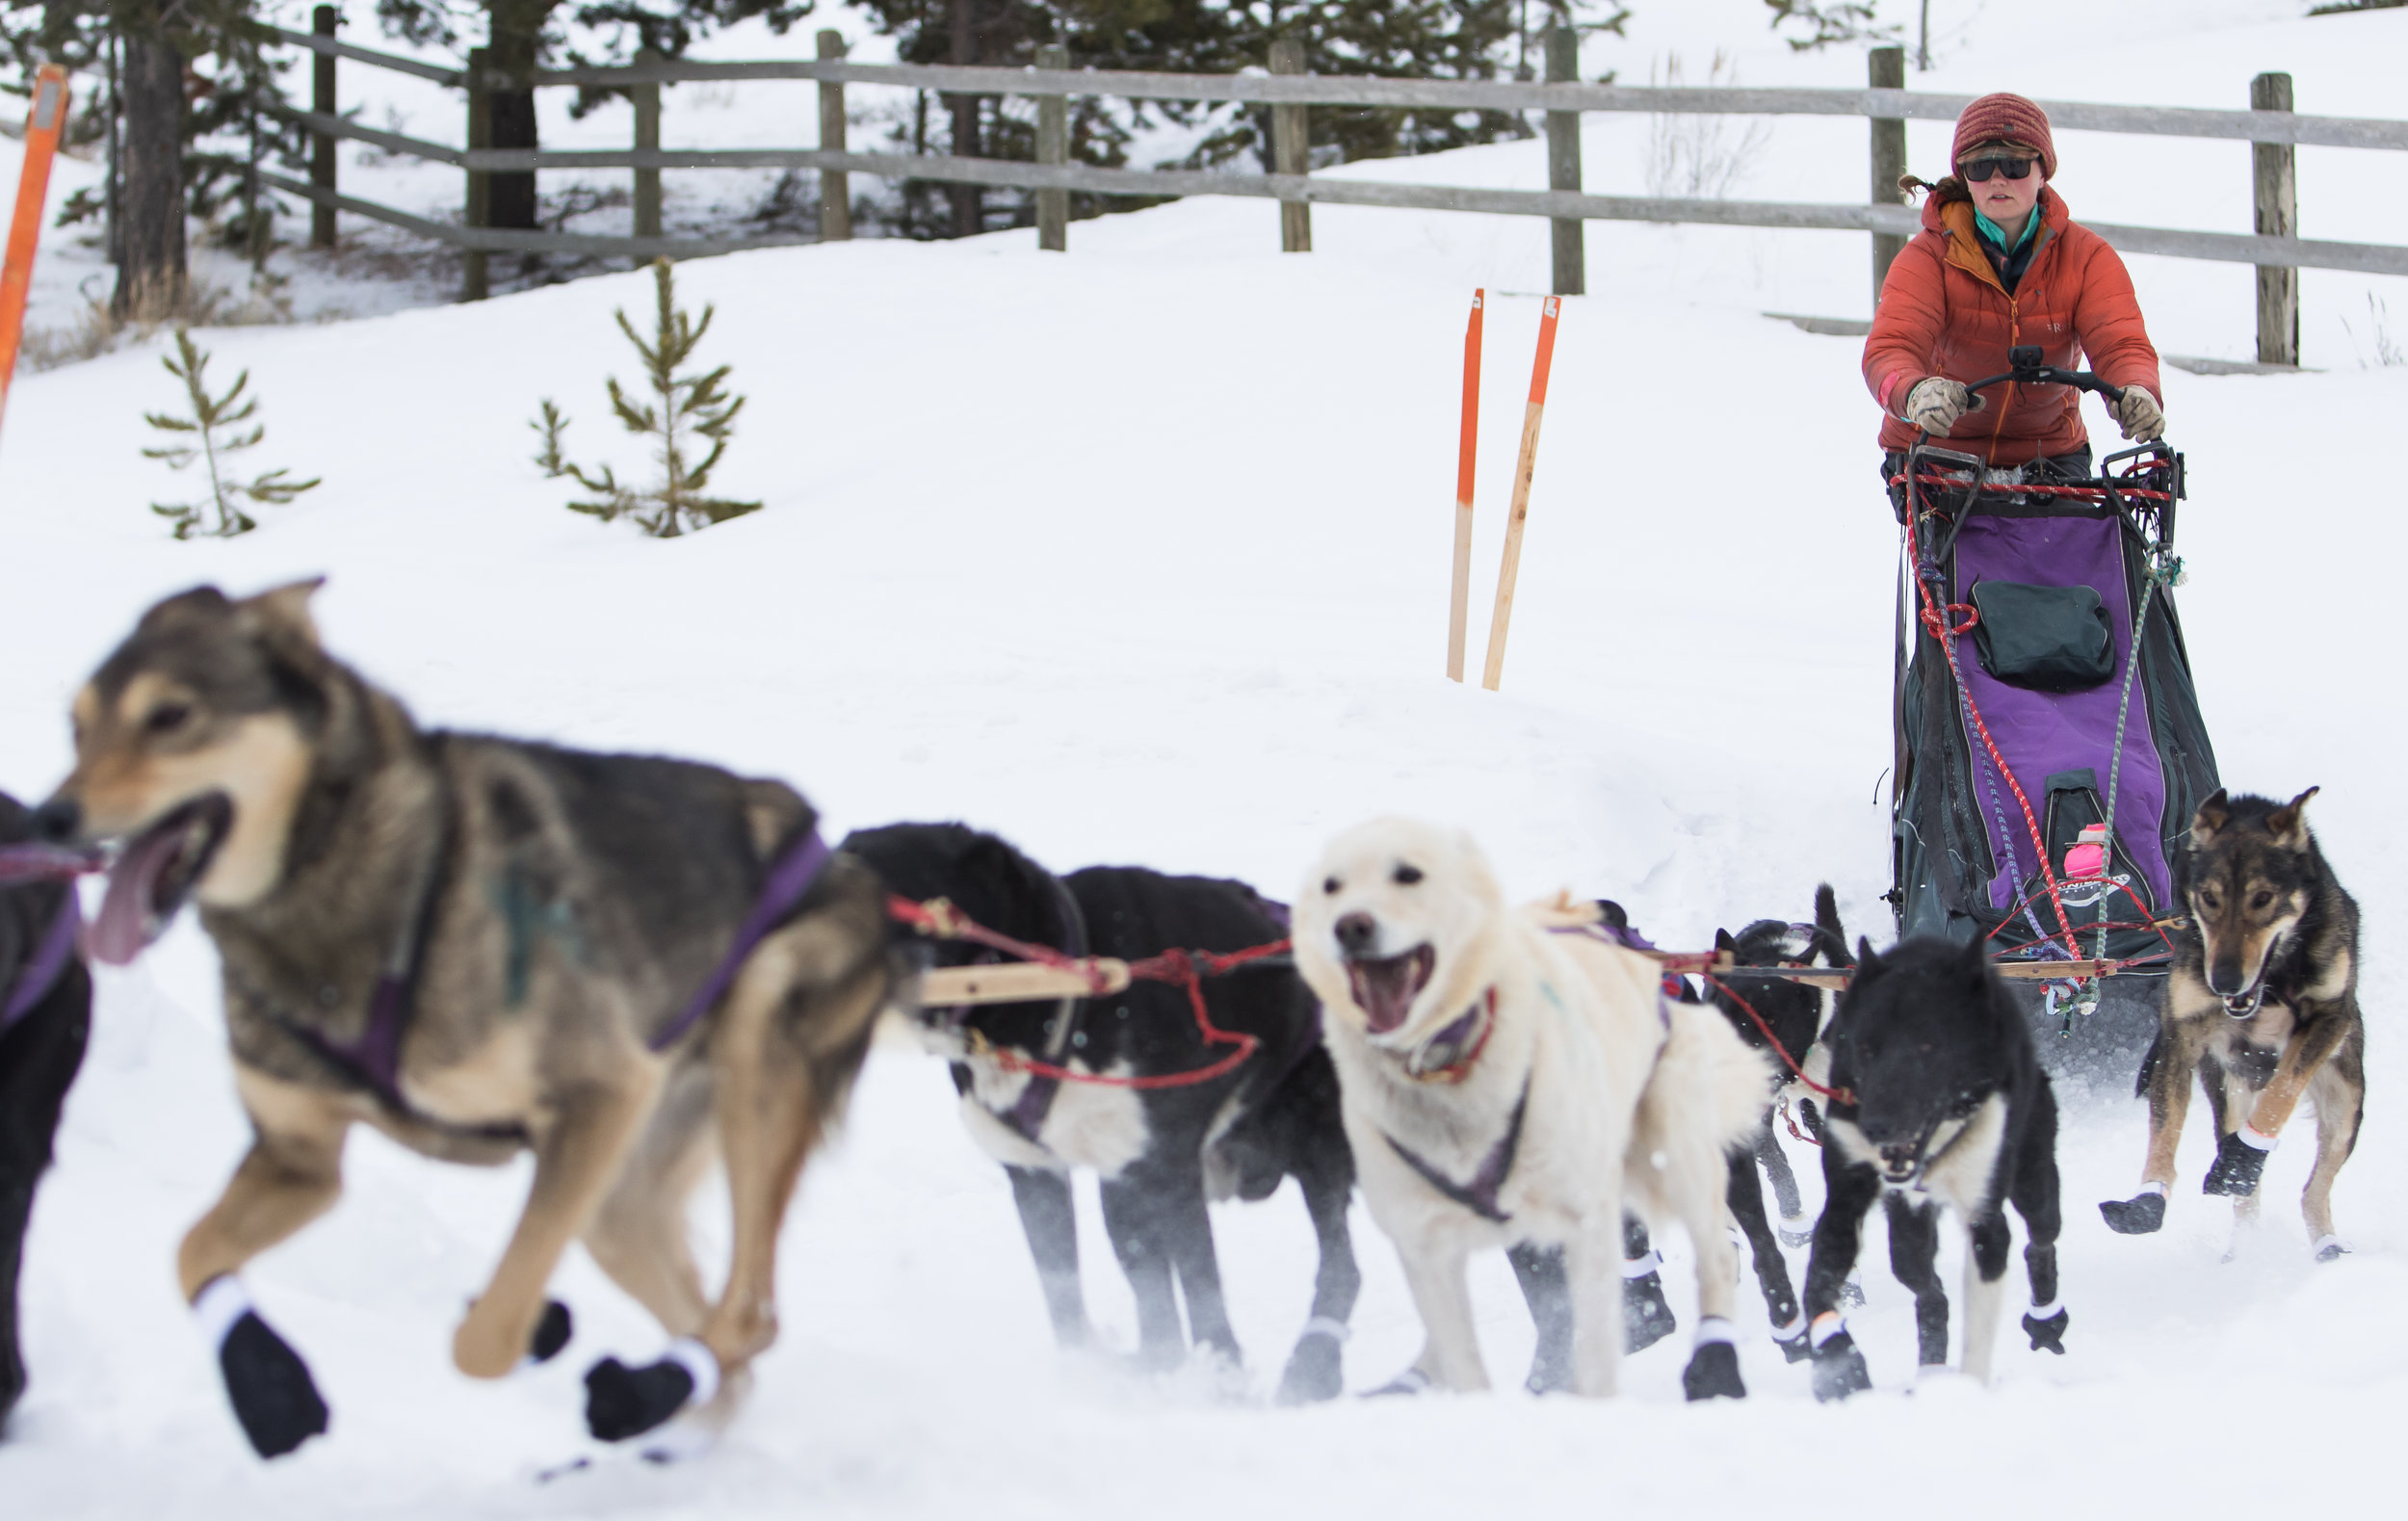 A musher prepares to cross the road with her sled dogs.